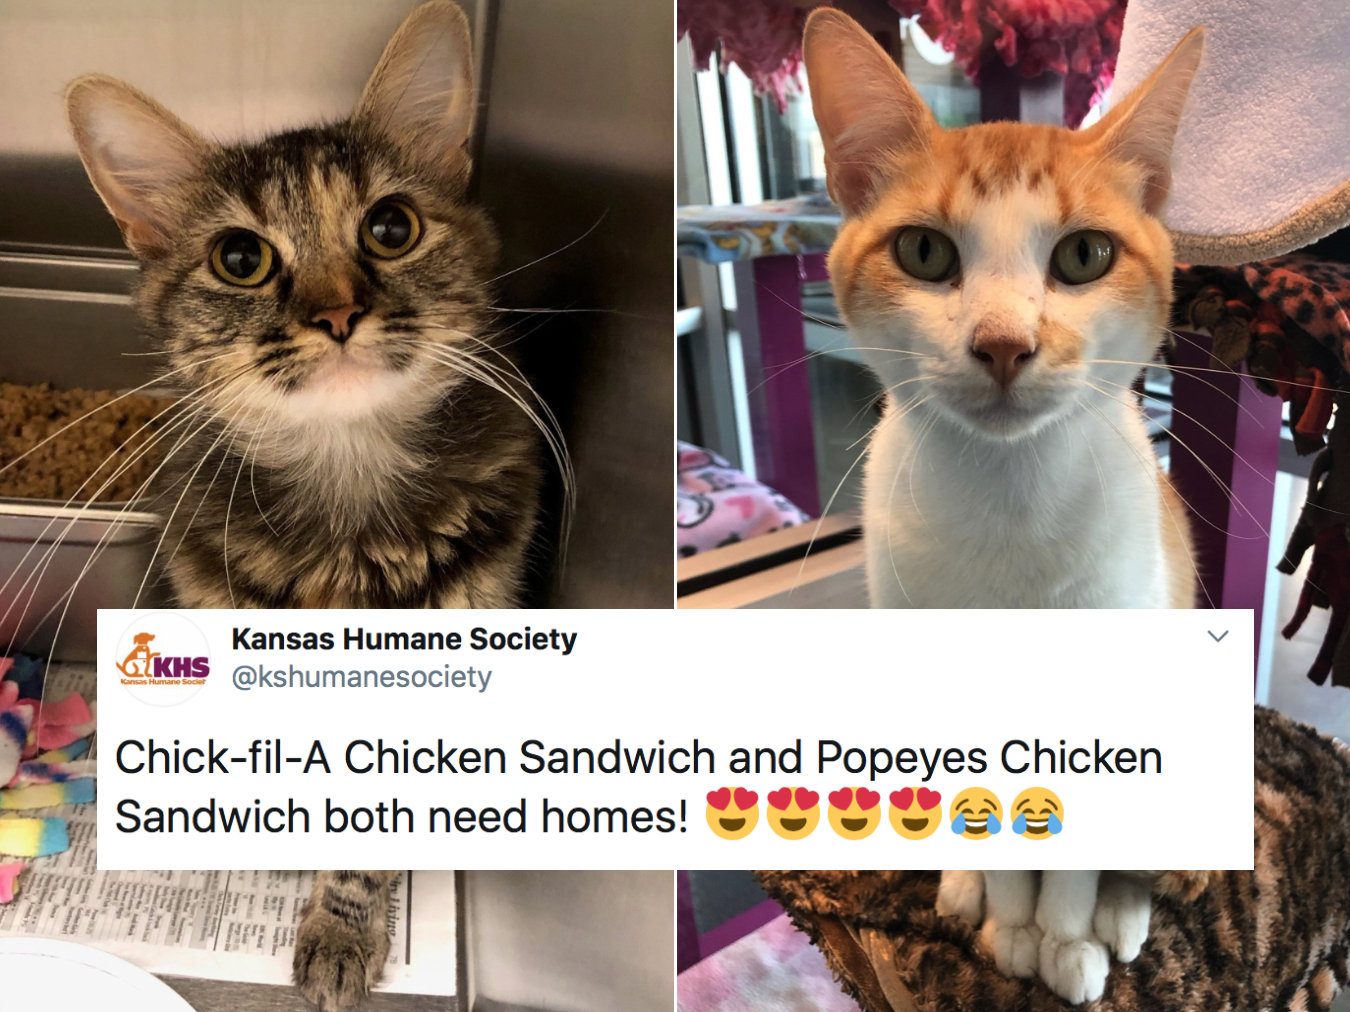 Chick-fil-A Popeyes Cats